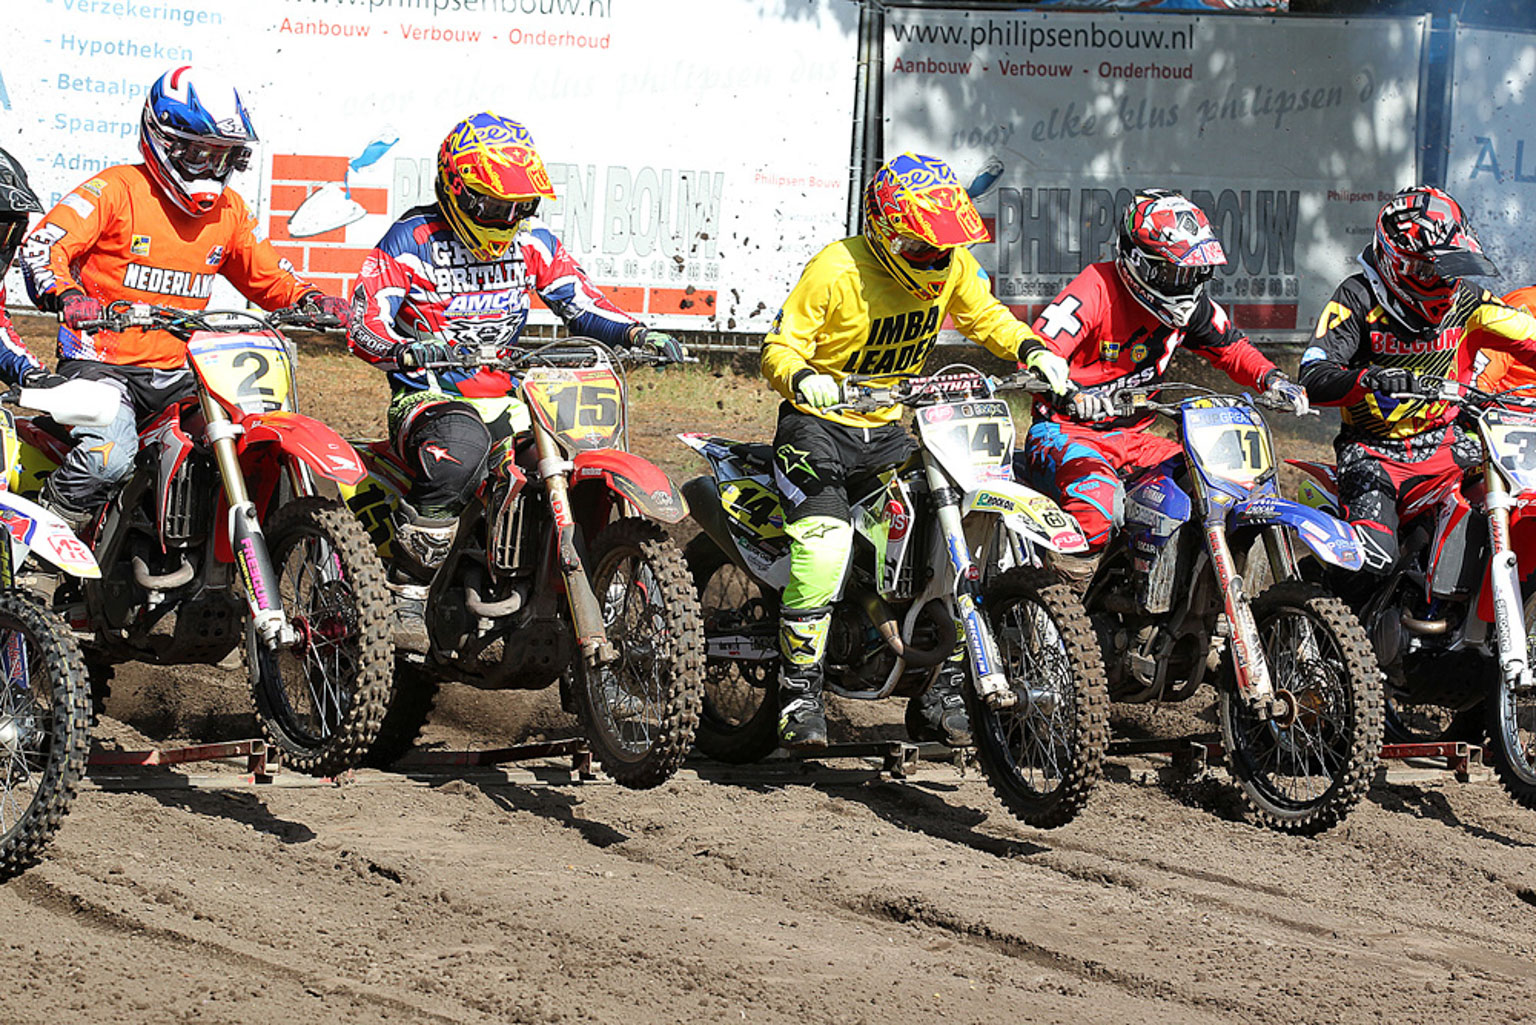 Moto one start action featuring Ed Briscoe(15) and Luke Burton(14)